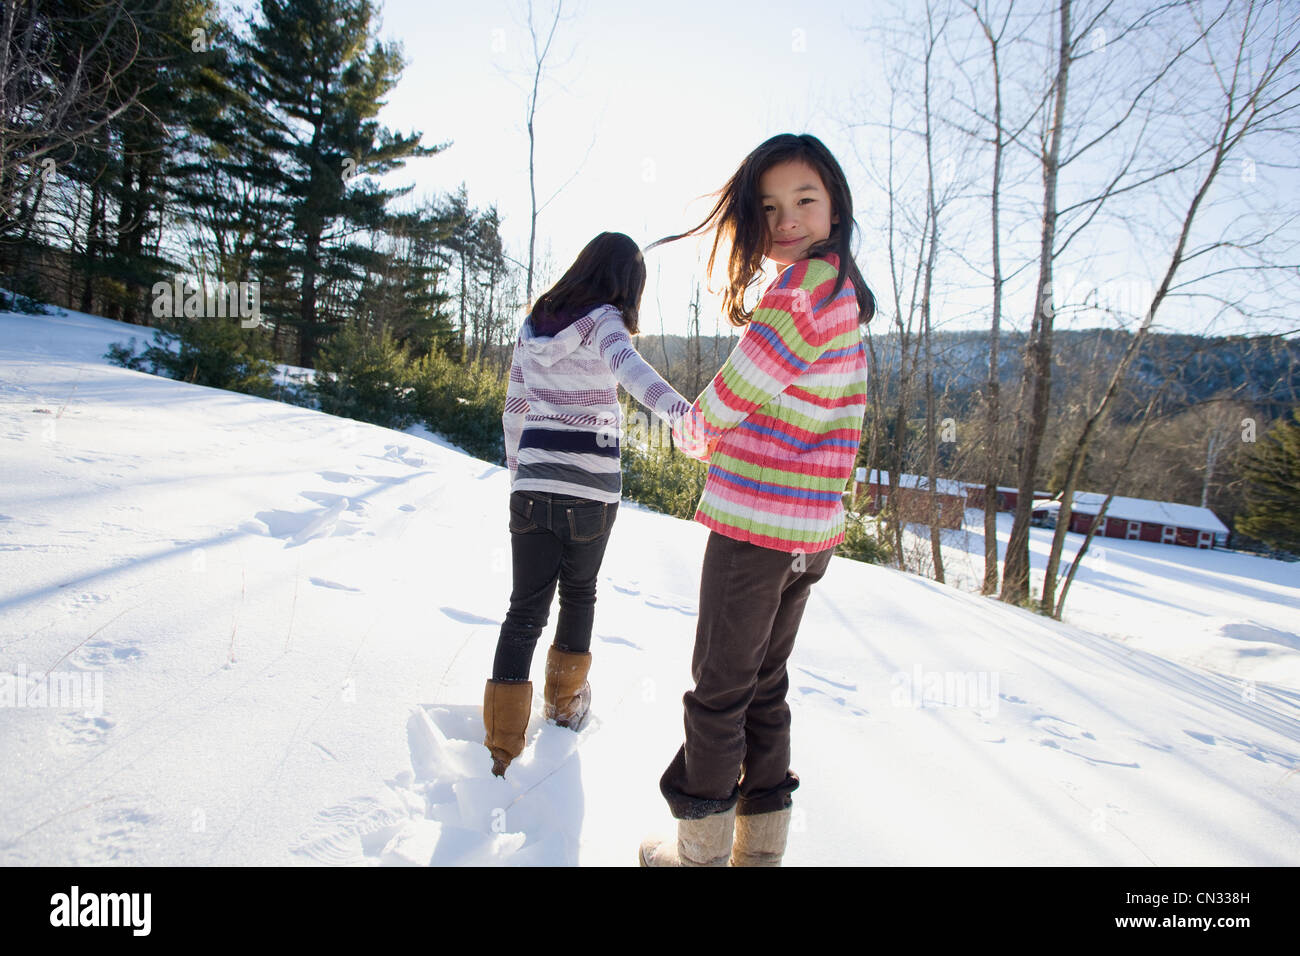 Two girls walking in the snow - Stock Image